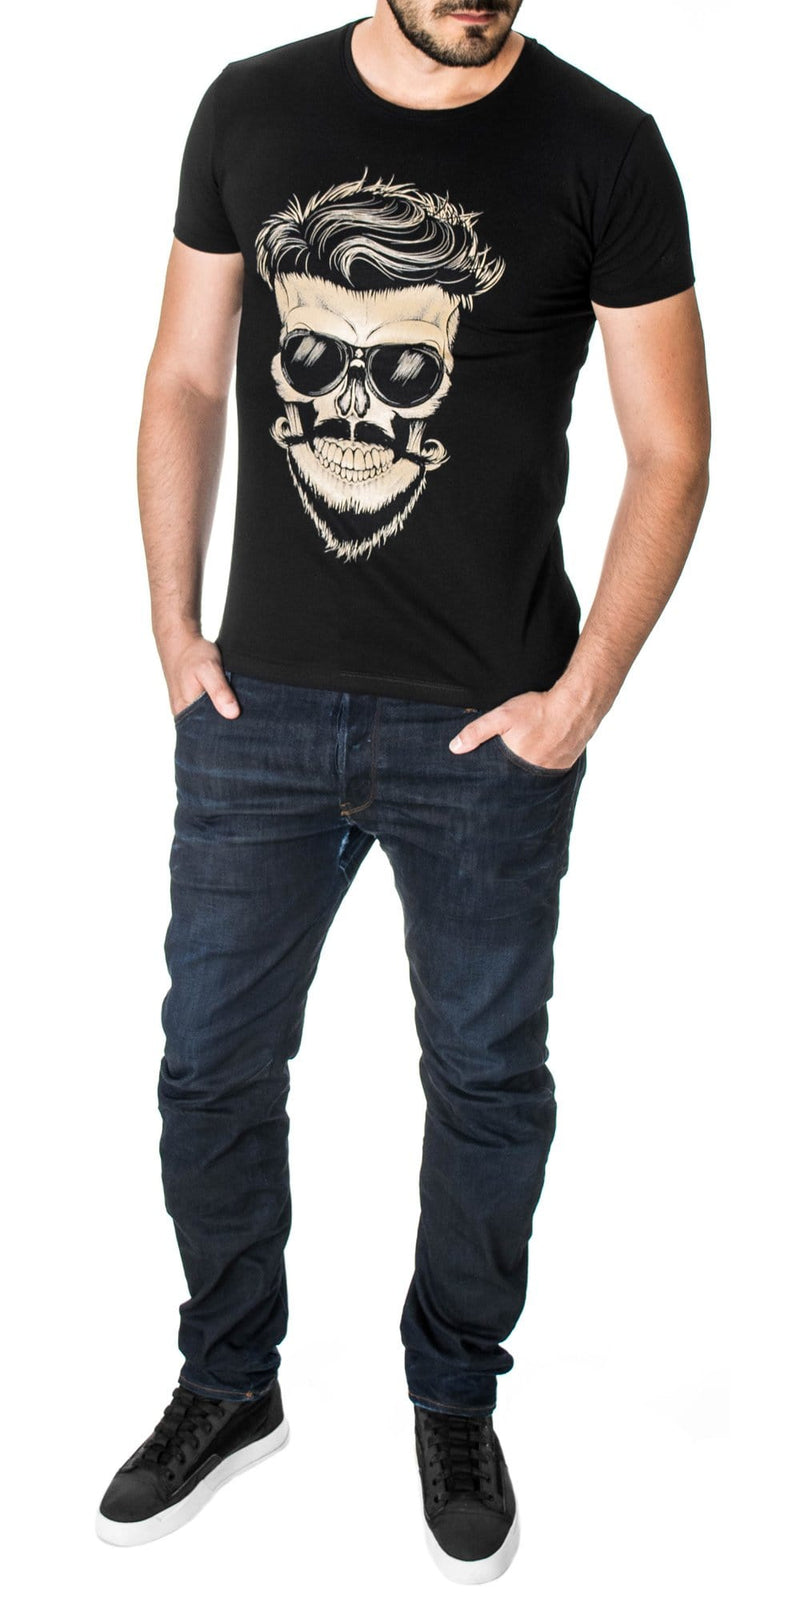 Mens skull graphic tee black (MOD1005RN)